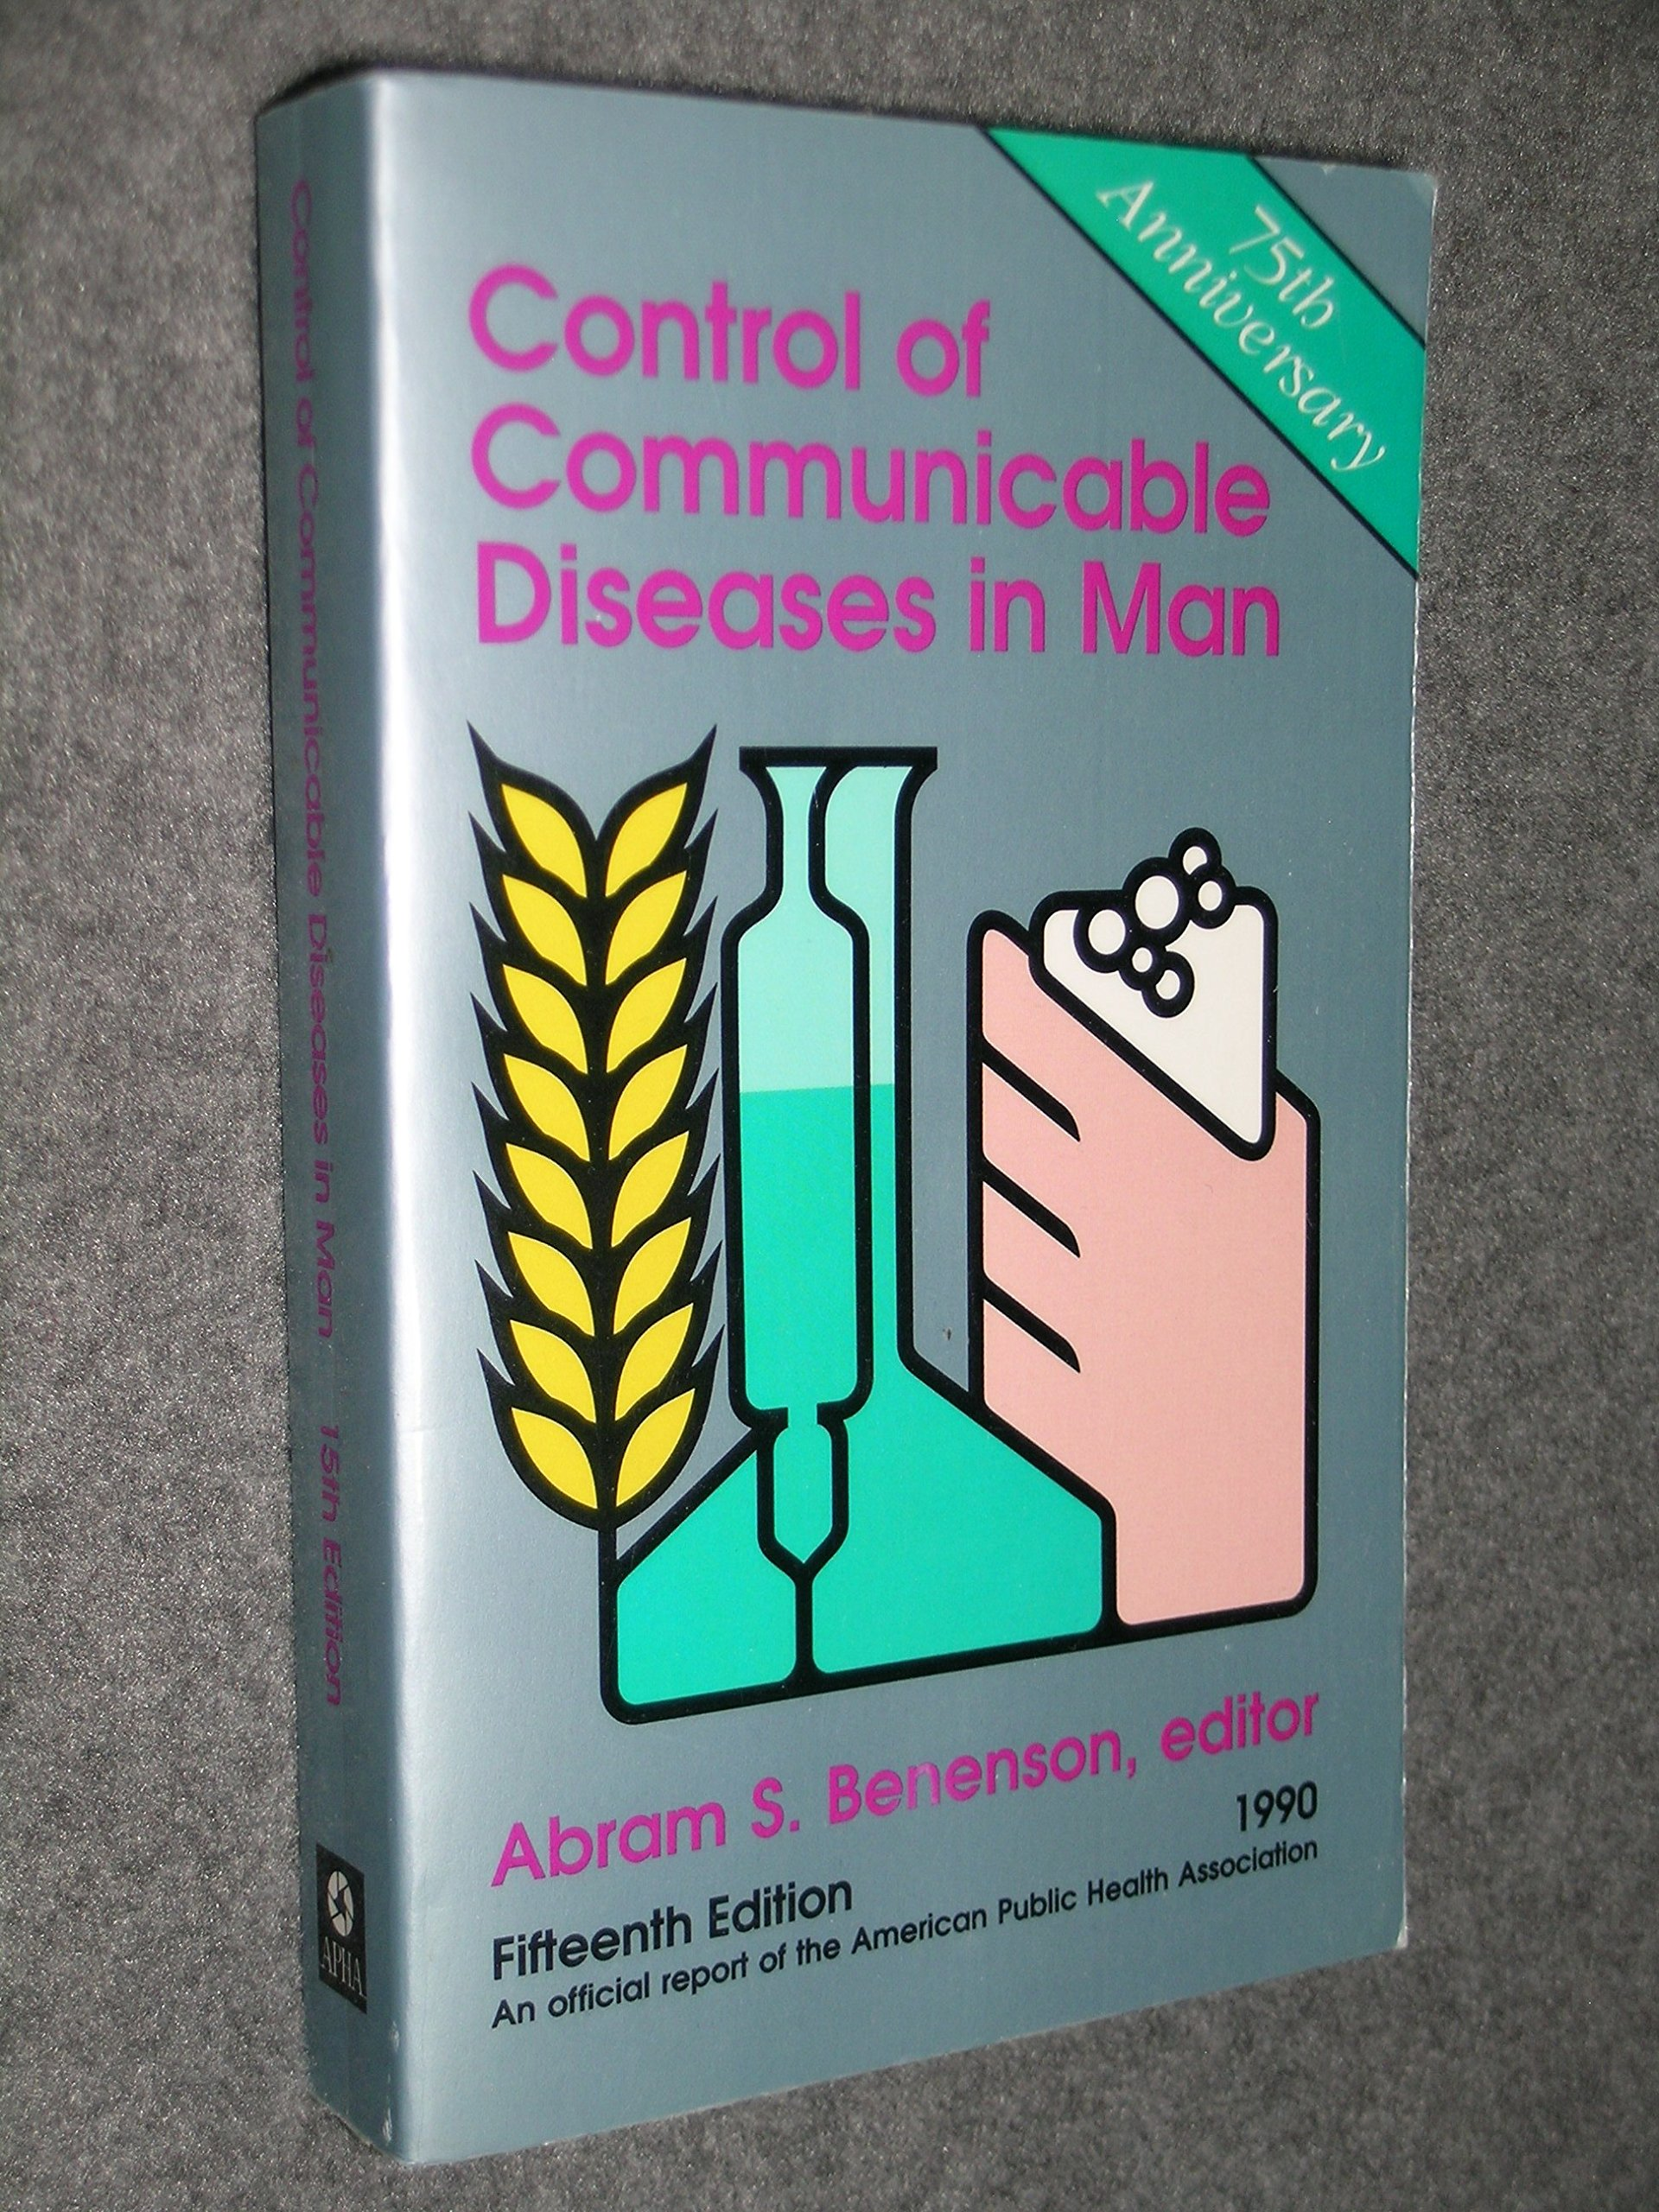 Control of Communicable Diseases in Man.: Abram S. (Editor) Beneson:  9780875531700: Amazon.com: Books